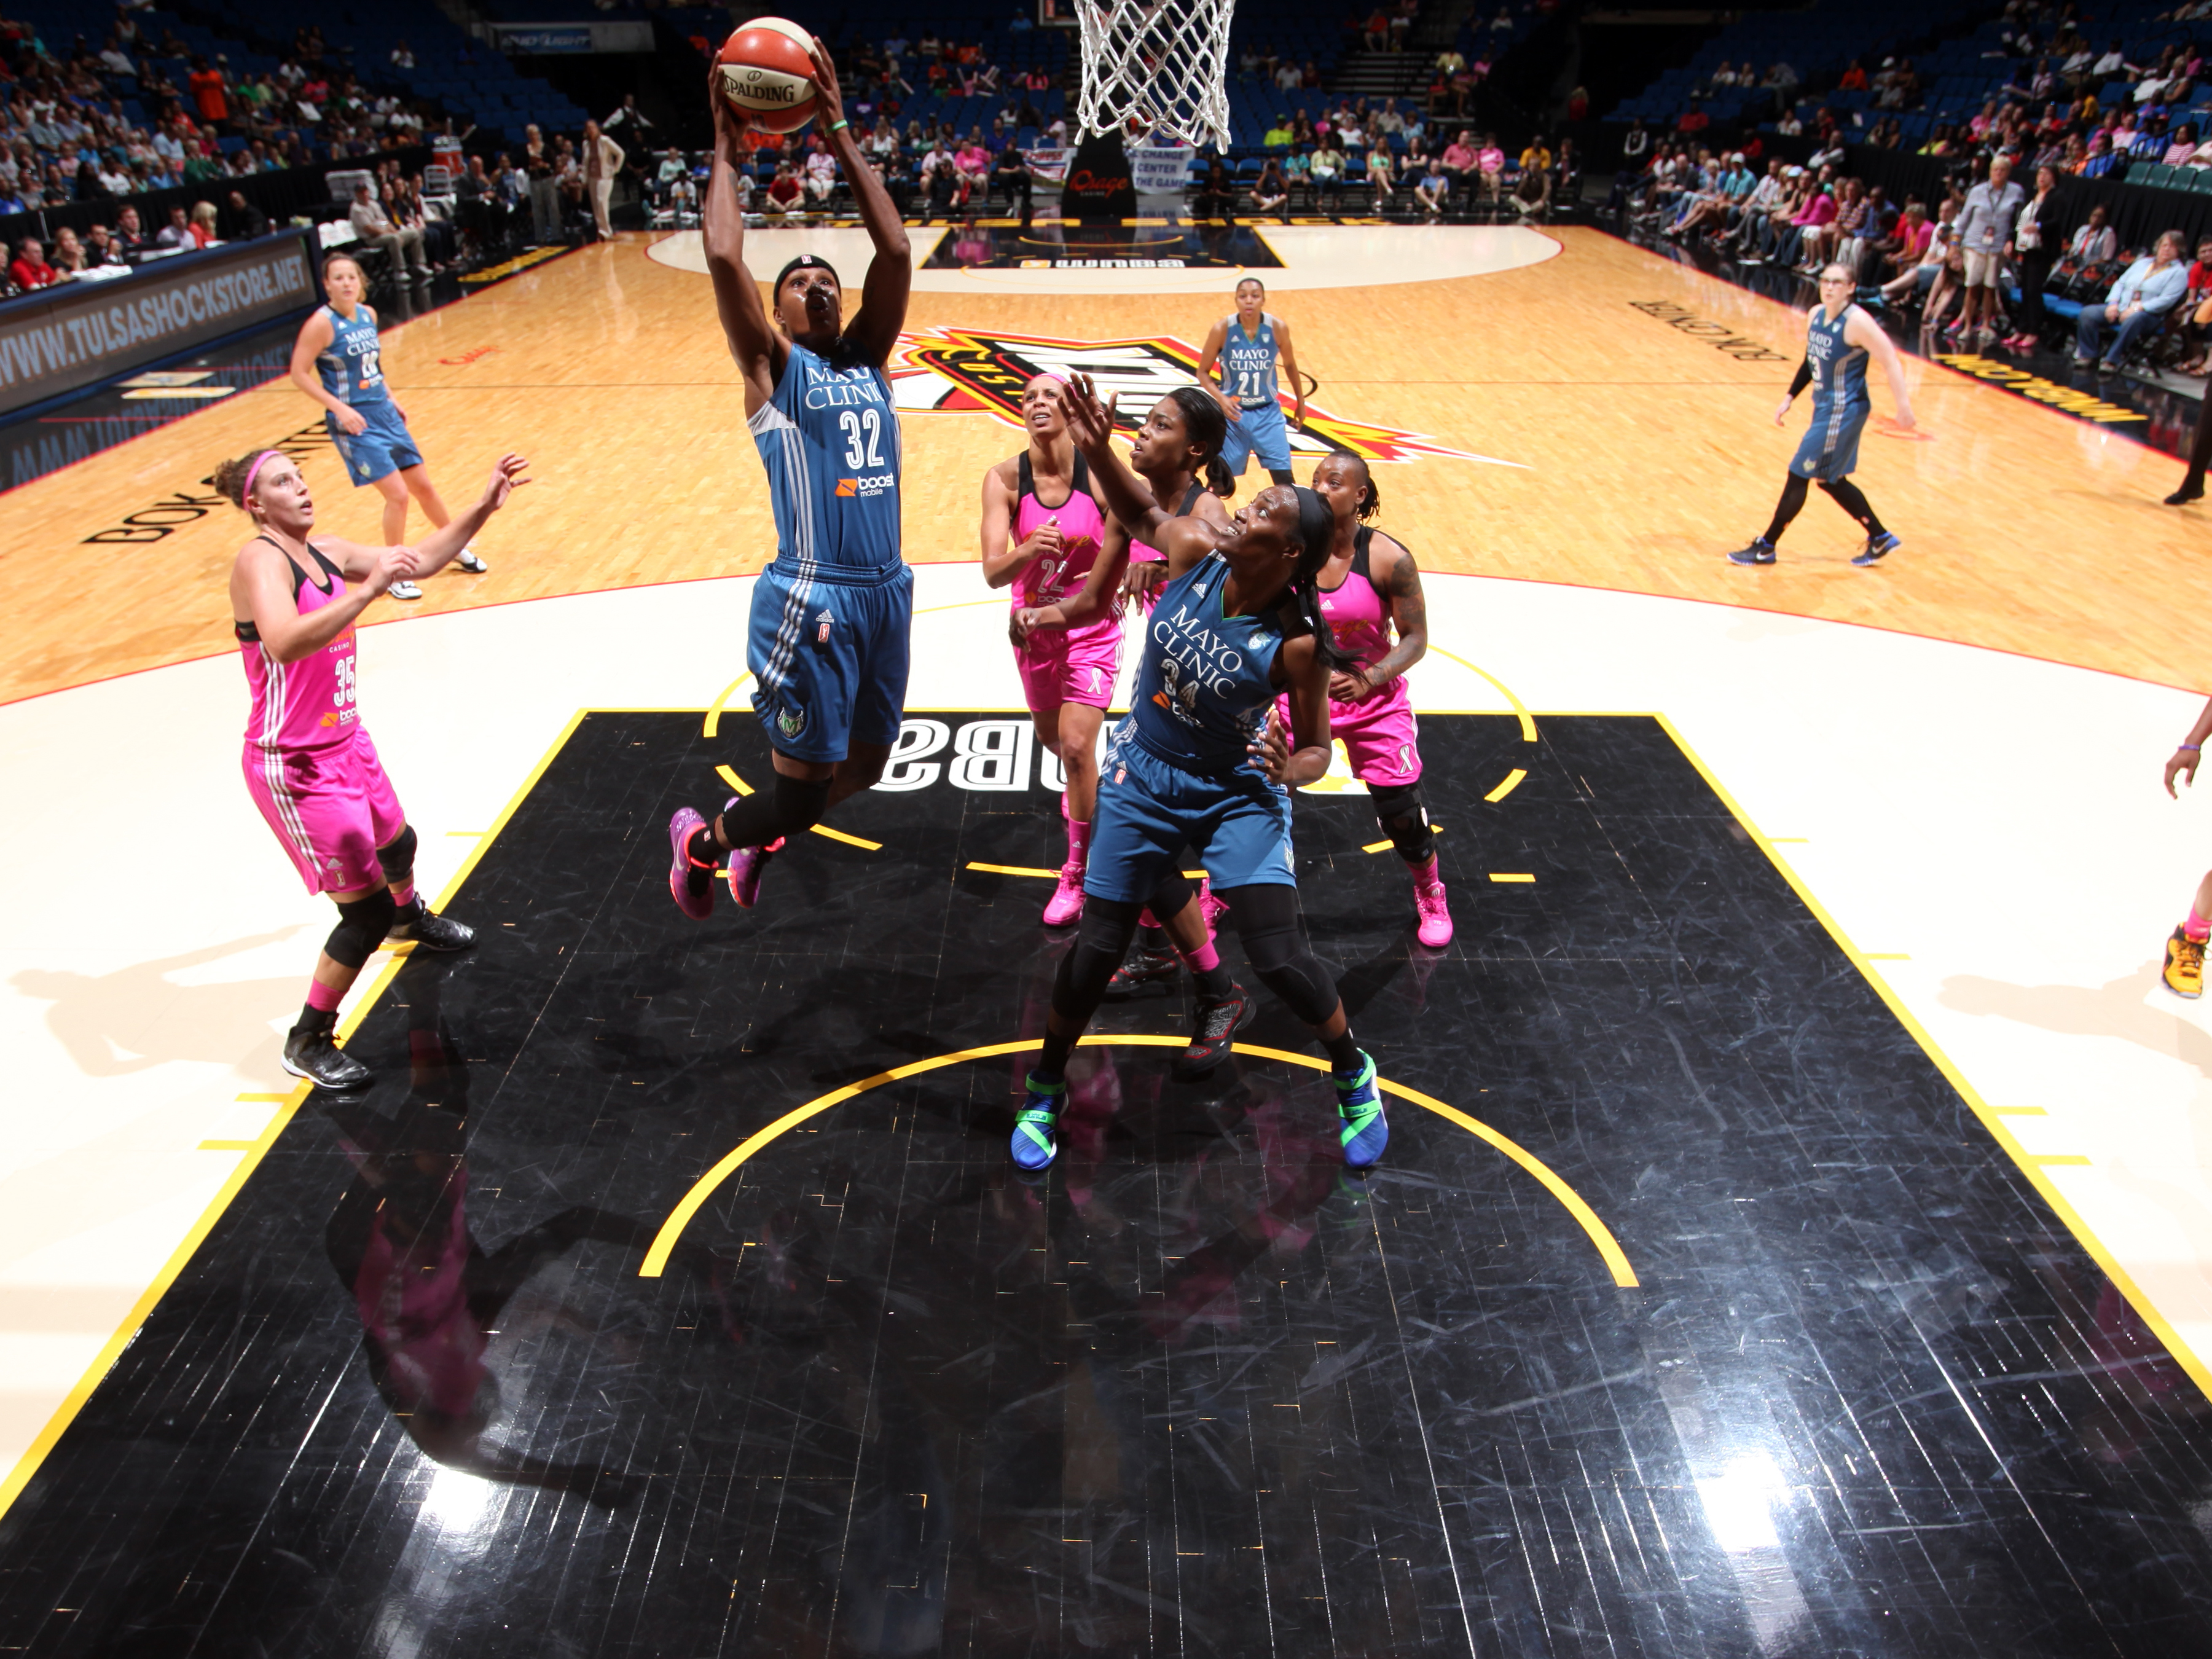 TULSA, OK - AUGUST 1: Rebekkah Brunson #32 of the Minnesota Lynx shoots the ball against the Tulsa Shock on August 1, 2015 at the BOK Center in Tulsa, Oklahoma.  (Photo by Shane Bevel/NBAE via Getty Images)